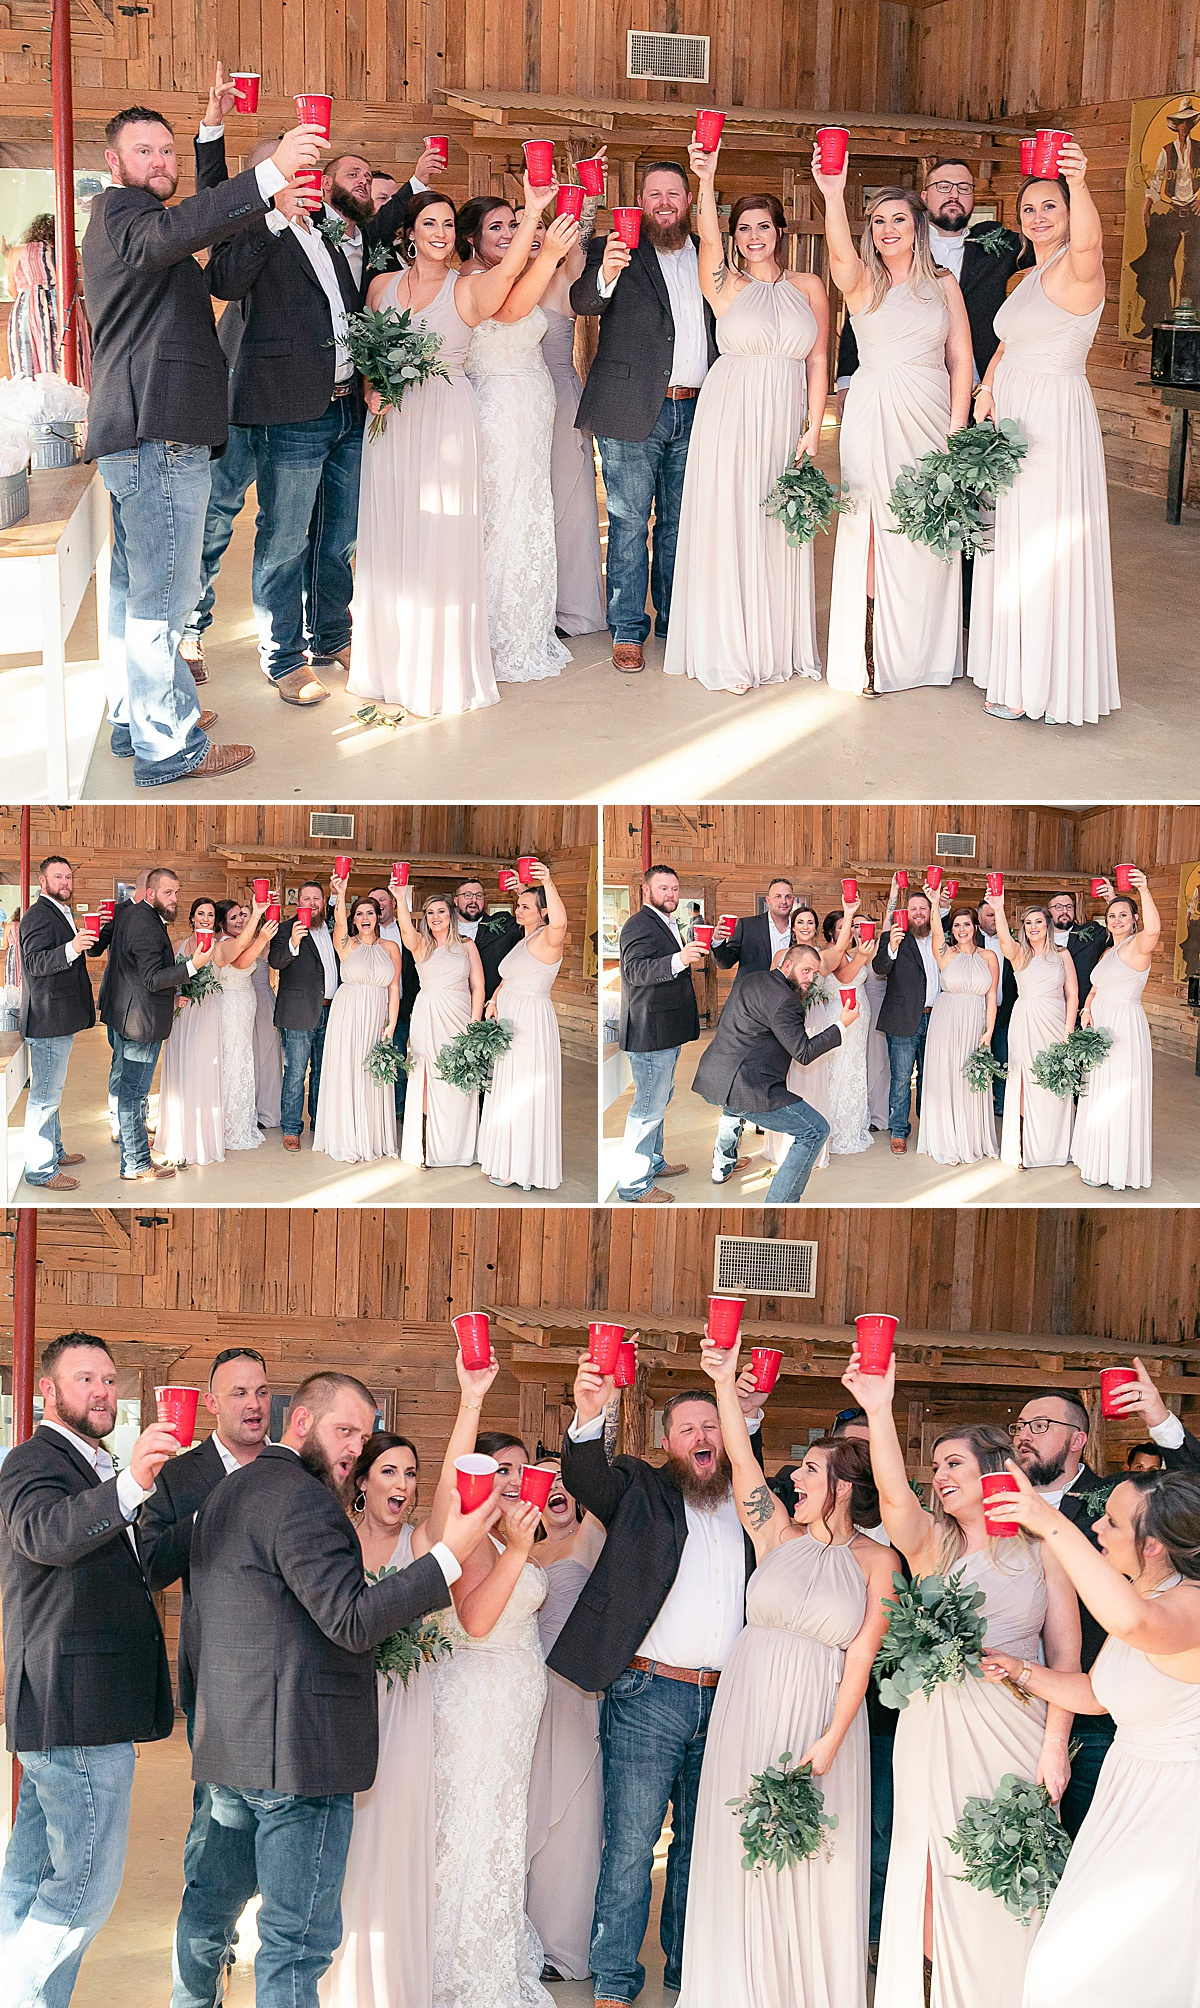 Rustic-Texas-Wedding-Hollow-Creek-Ranch-Carly-Barton-Photography_0099.jpg